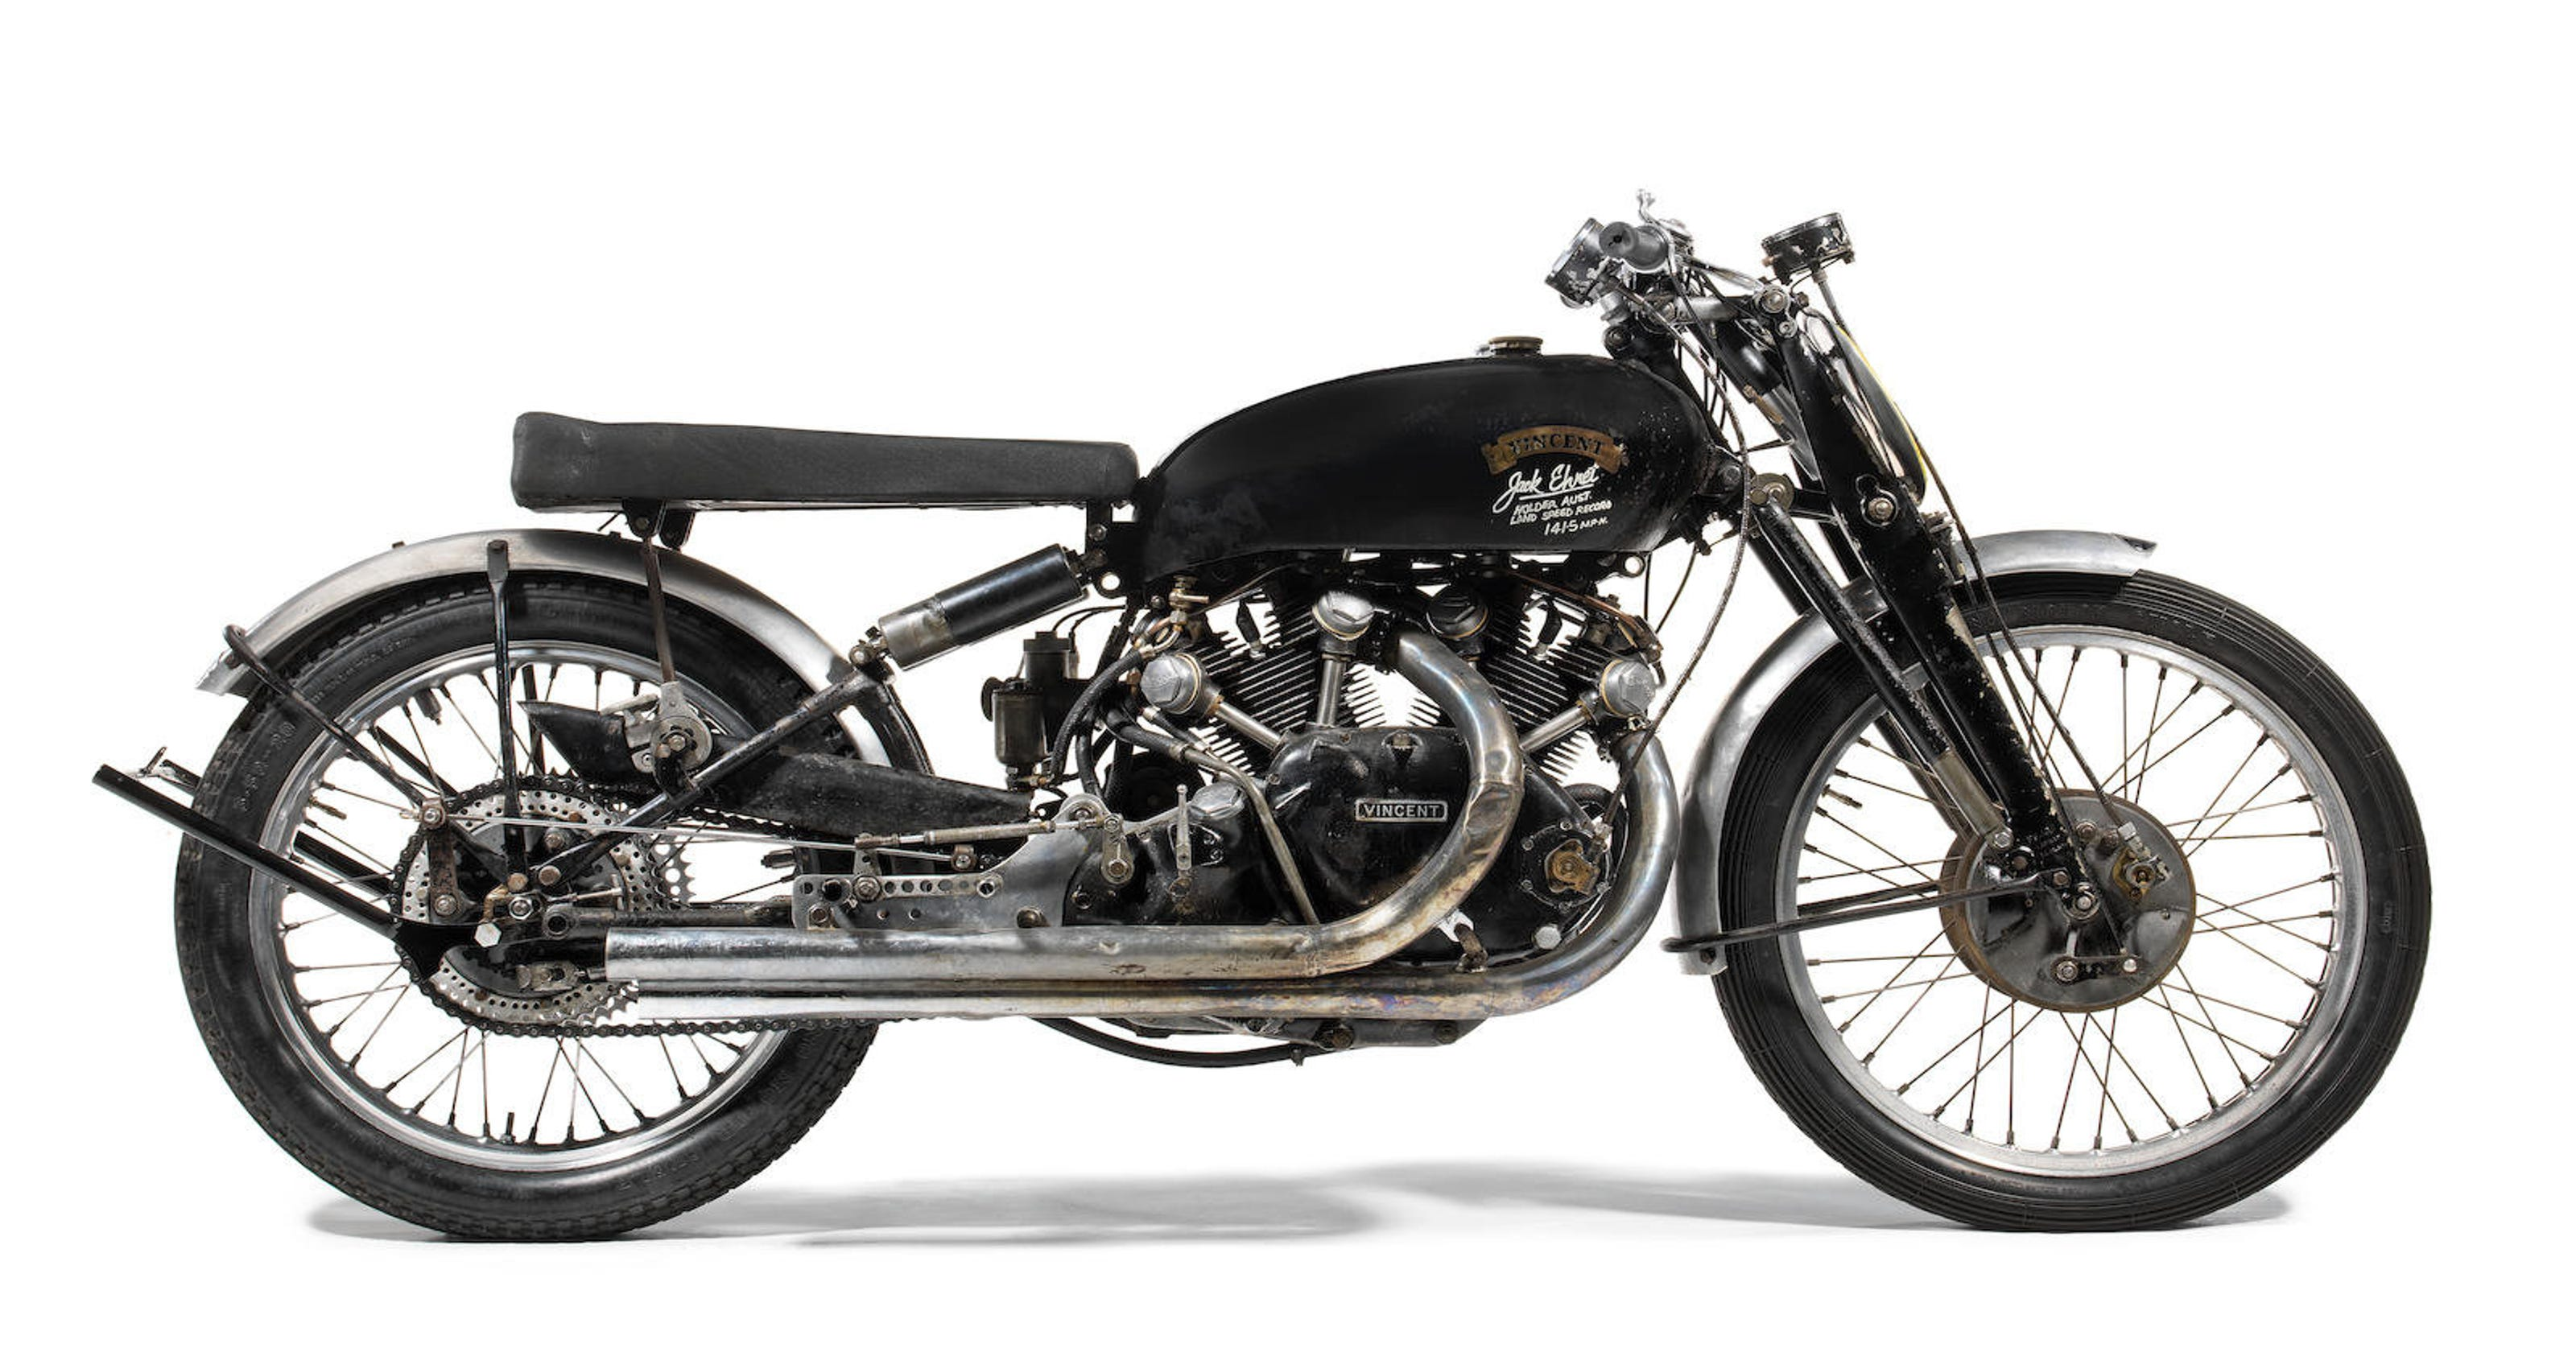 Motorcycle White Motorcycle Cars: Classic Motorcycle Values Soar, Vincent Black Lightning Leads